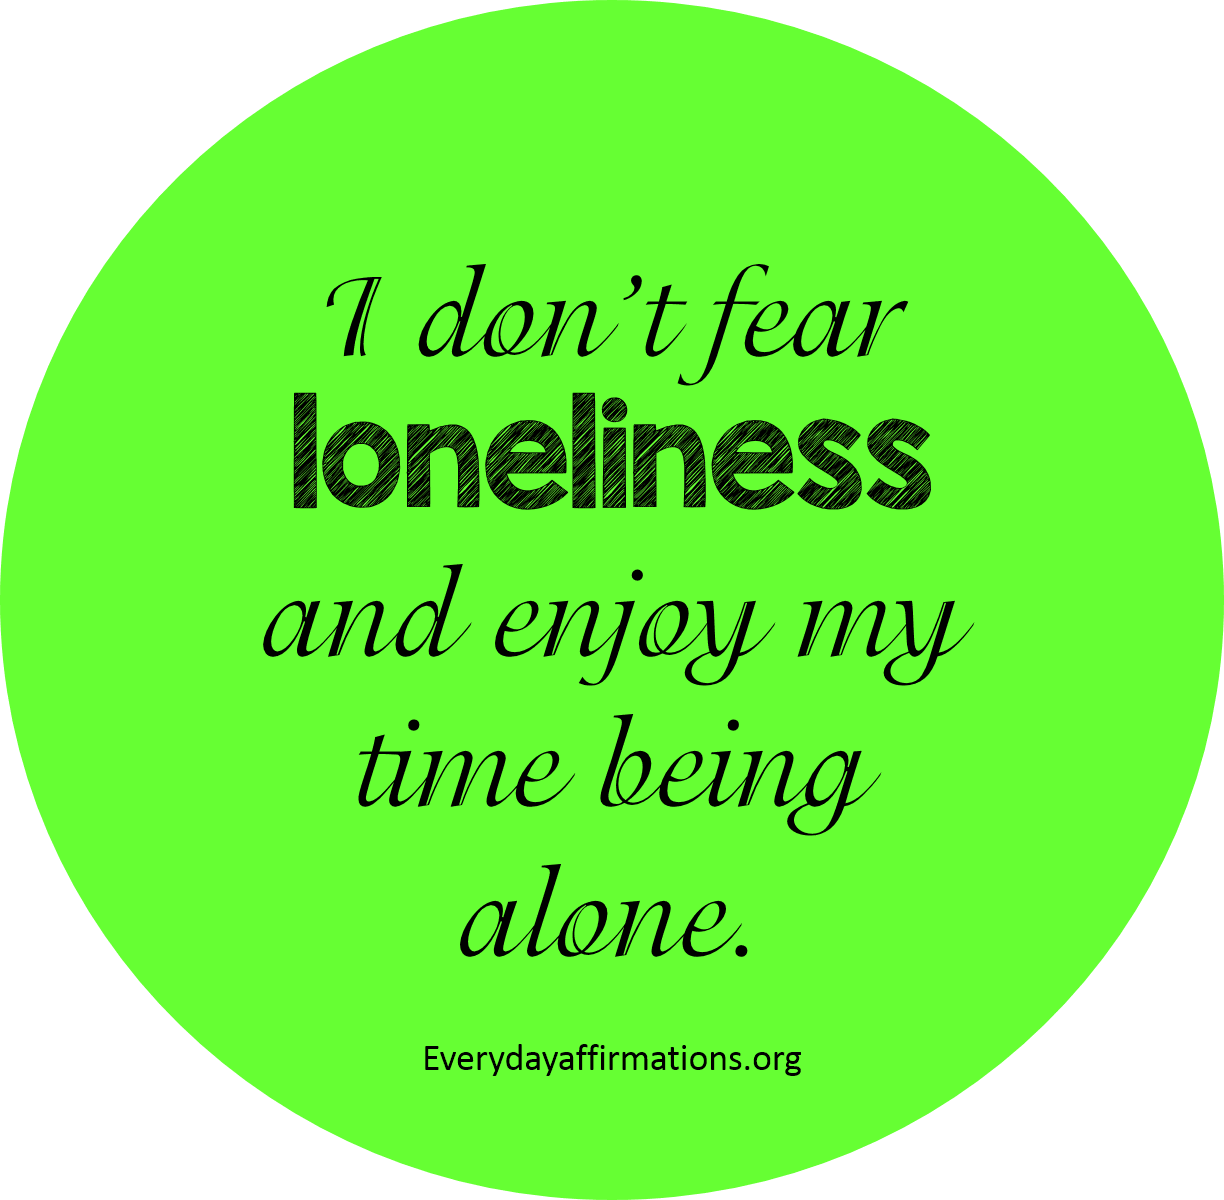 Simple Quotes Wallpaper 18 Affirmations Mentally Strong People Use Everyday